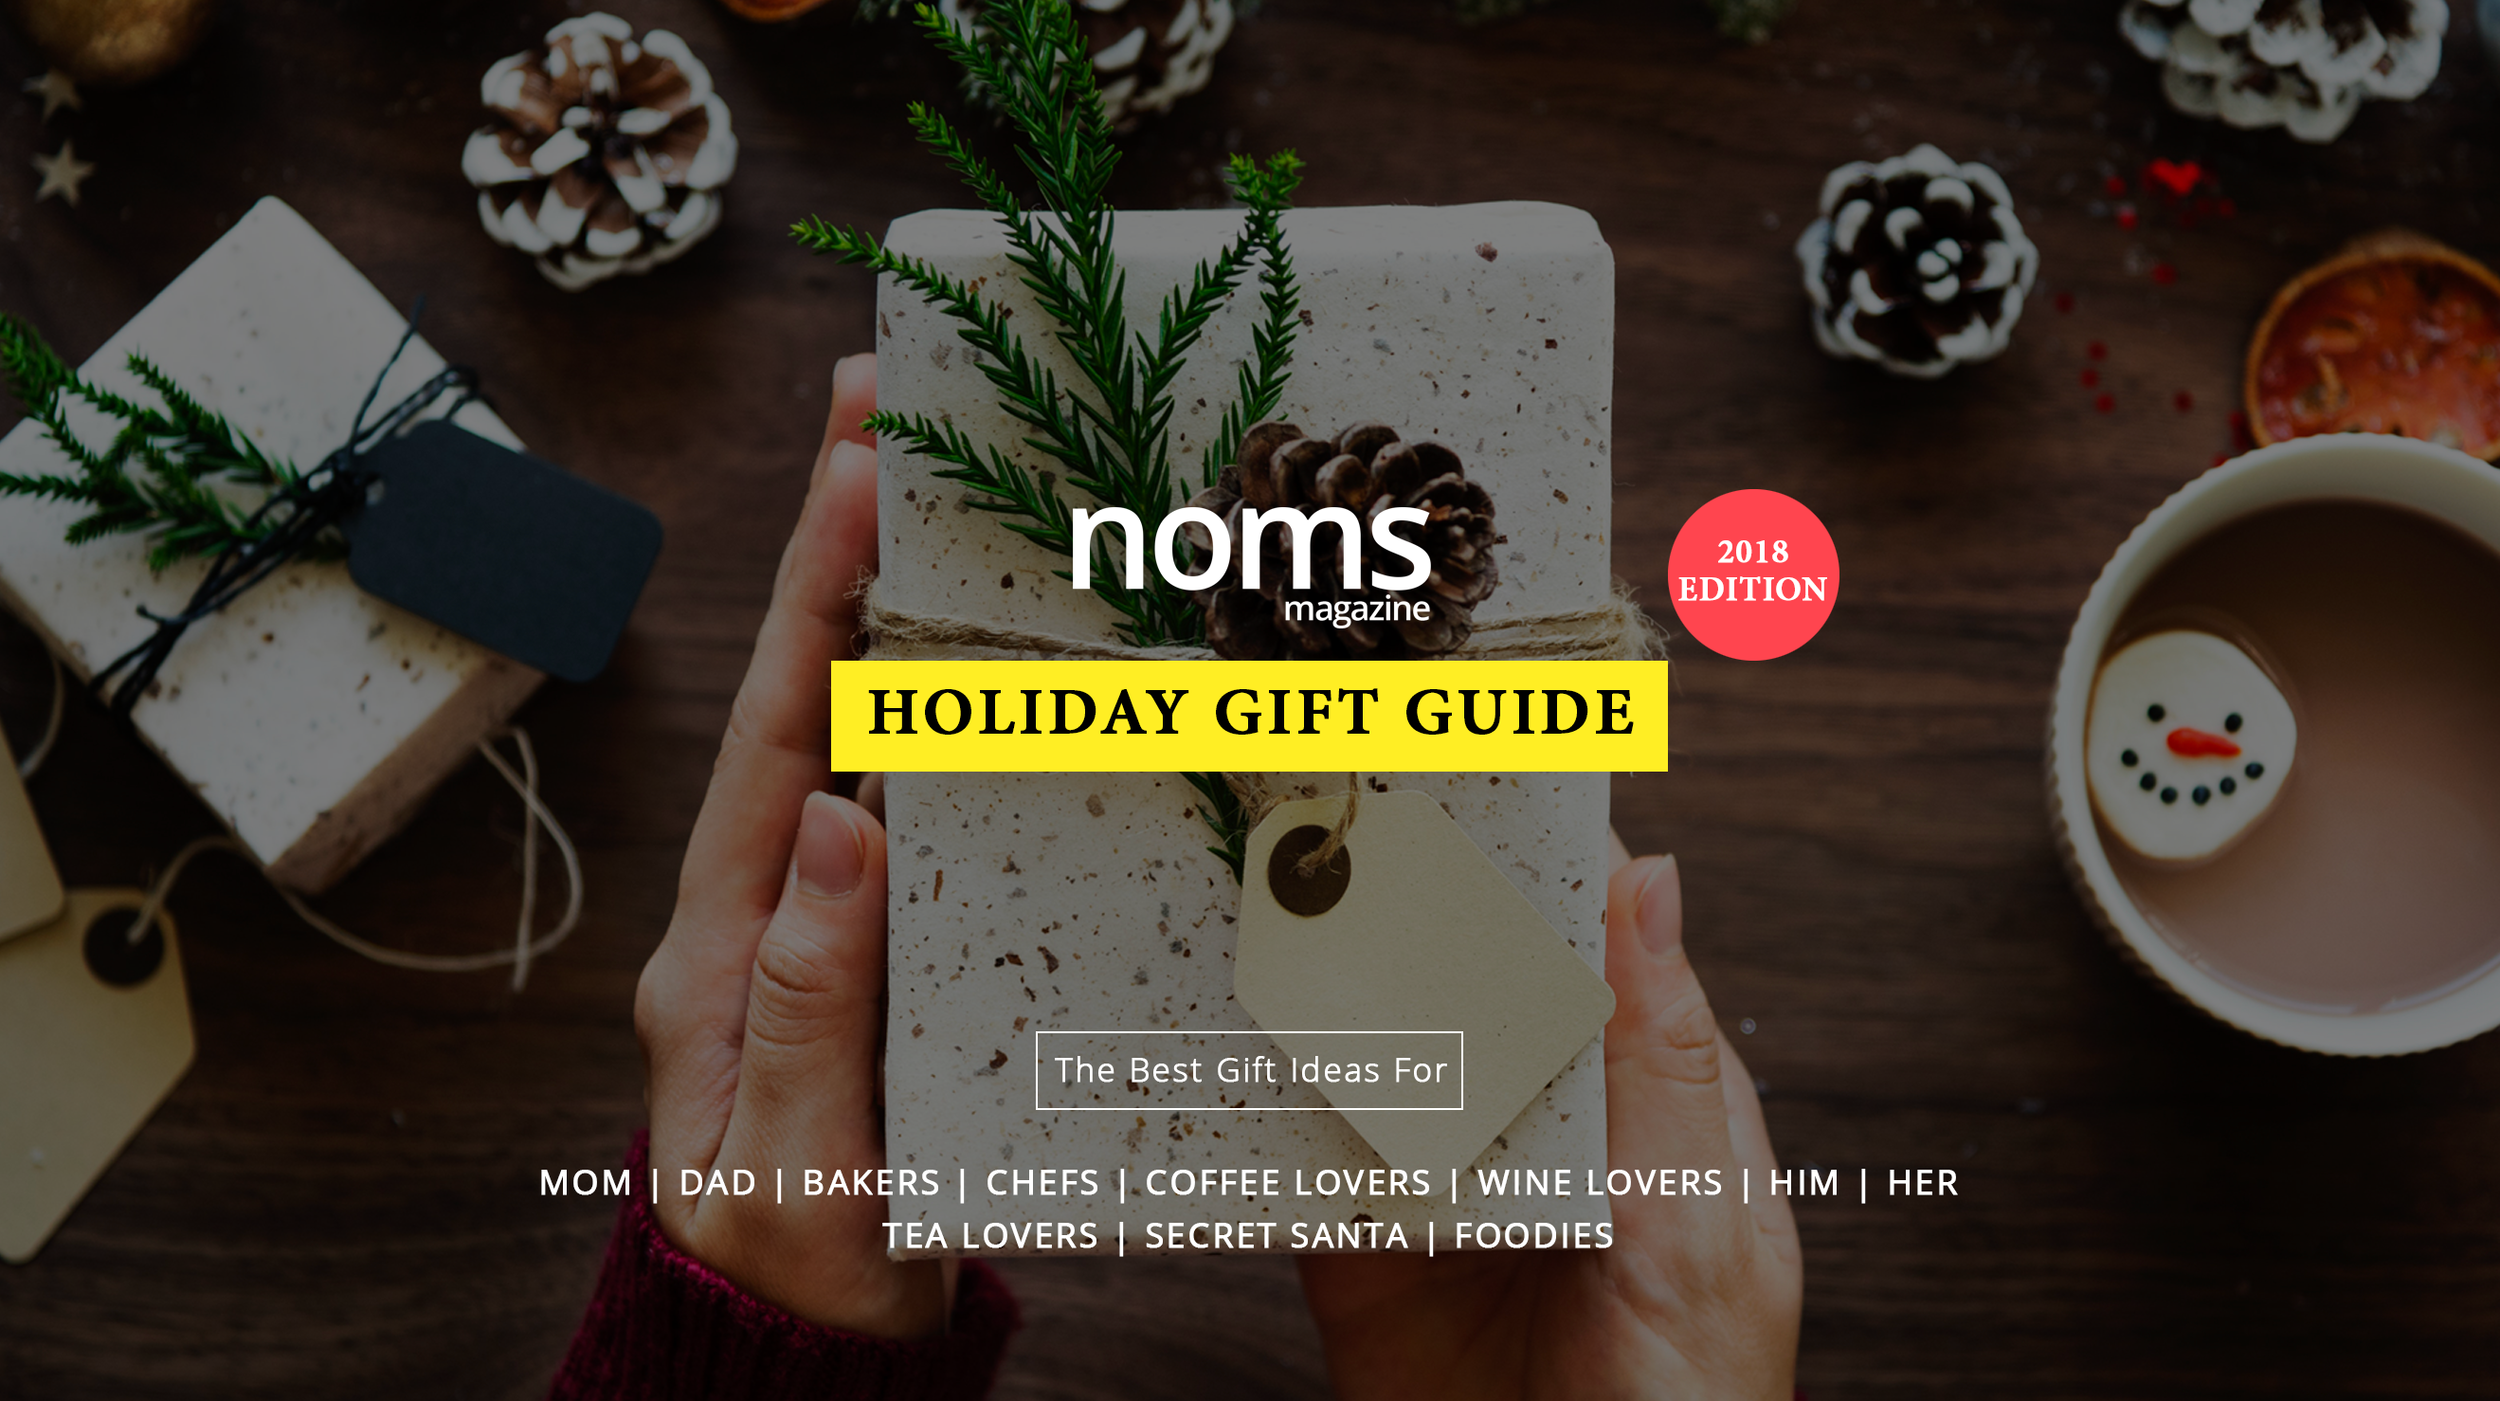 Noms Holiday Gift Guide 2018